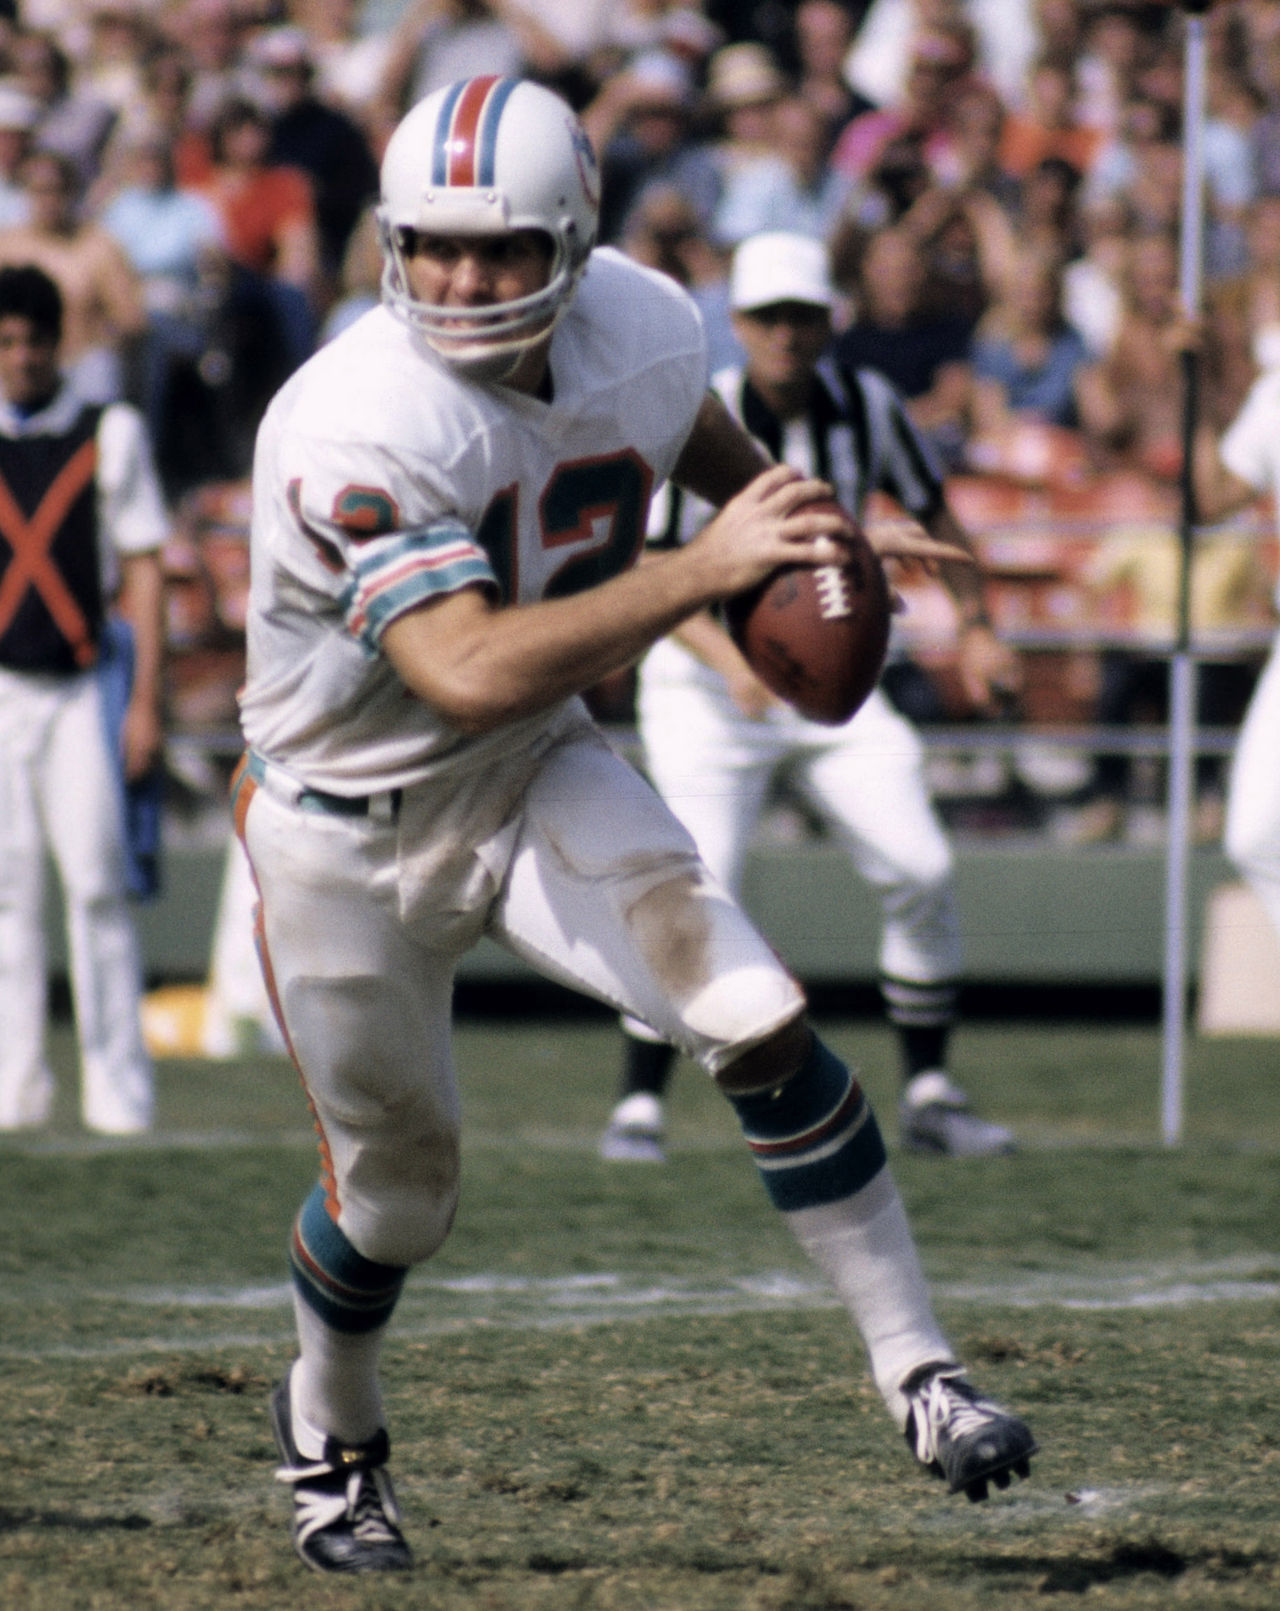 The Dolphins selected Griese out of Purdue with the fourth overall pick (one pick after the 49ers selected Heisman Trophy winner Steve Spurrier) and he became the leader of the Dolphins offense. Griese led the Dolphins to three consecutive Super Bowl appearances, including a relief appearance of Earl Morrall to cap Miami's perfect season in 1972. Griese and the Dolphins were even better in 1973, as they won a second consecutive Super Bowl. Griese was elected to the Pro Football Hall of Fame in 1990.